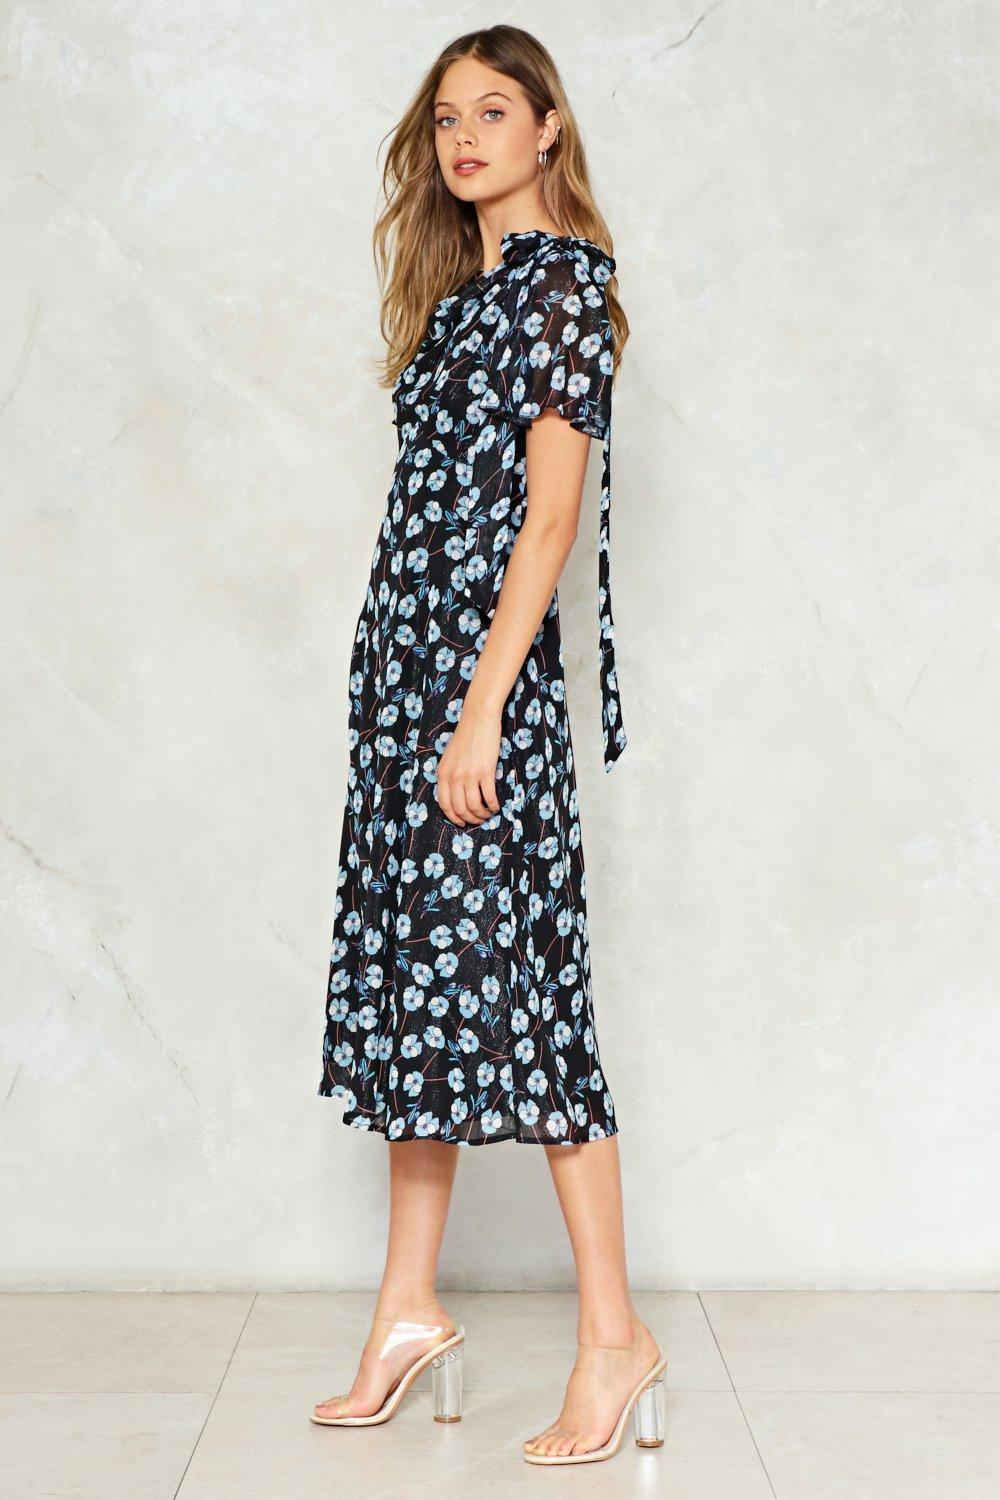 734cb13479335 Bud to the Bone Floral Midi Dress. Hover to zoom